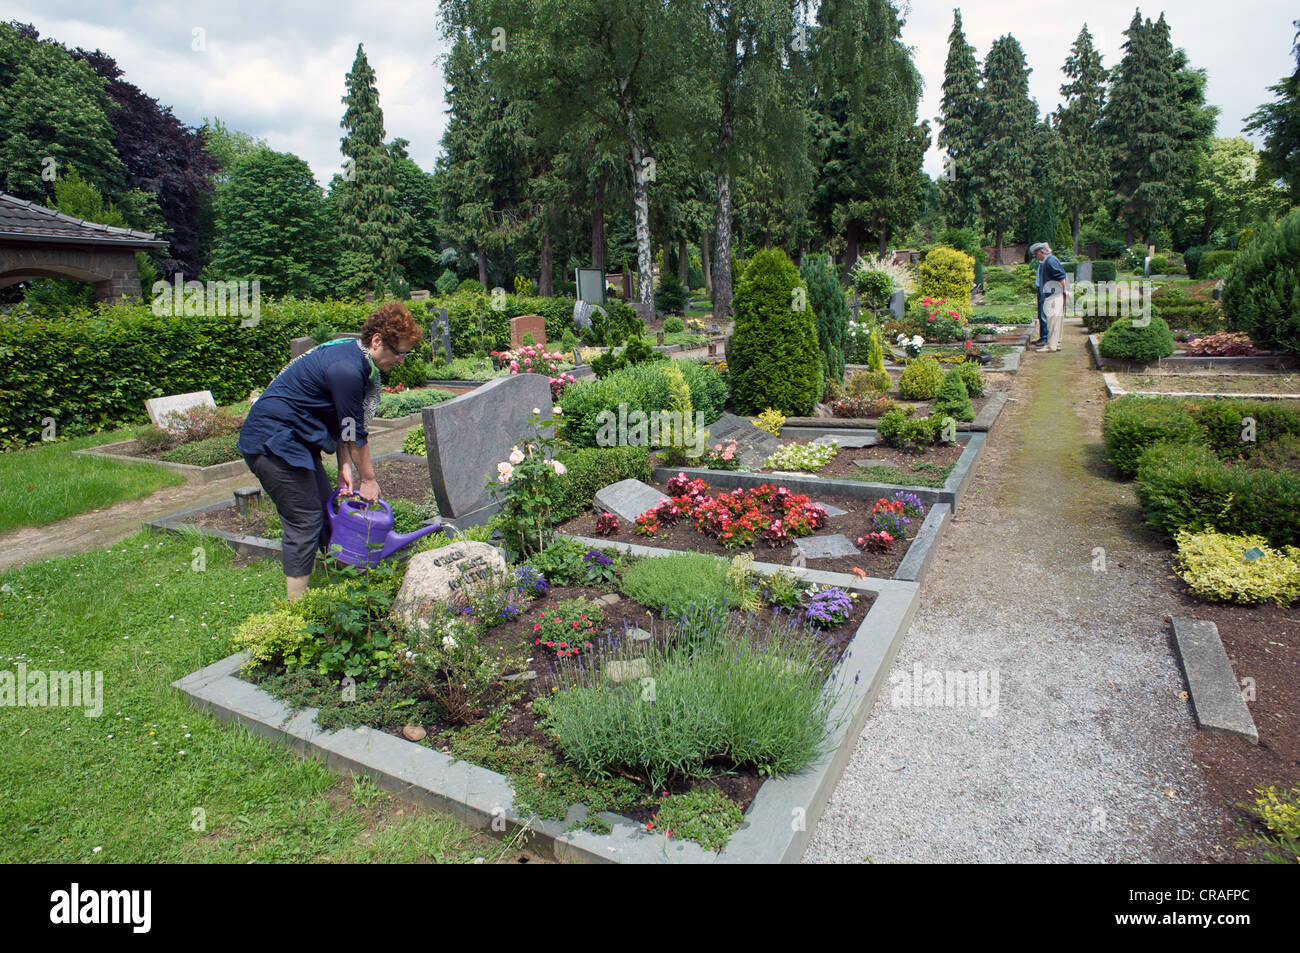 Woman watering flowers on a grave in a German graveyard - Stock Image